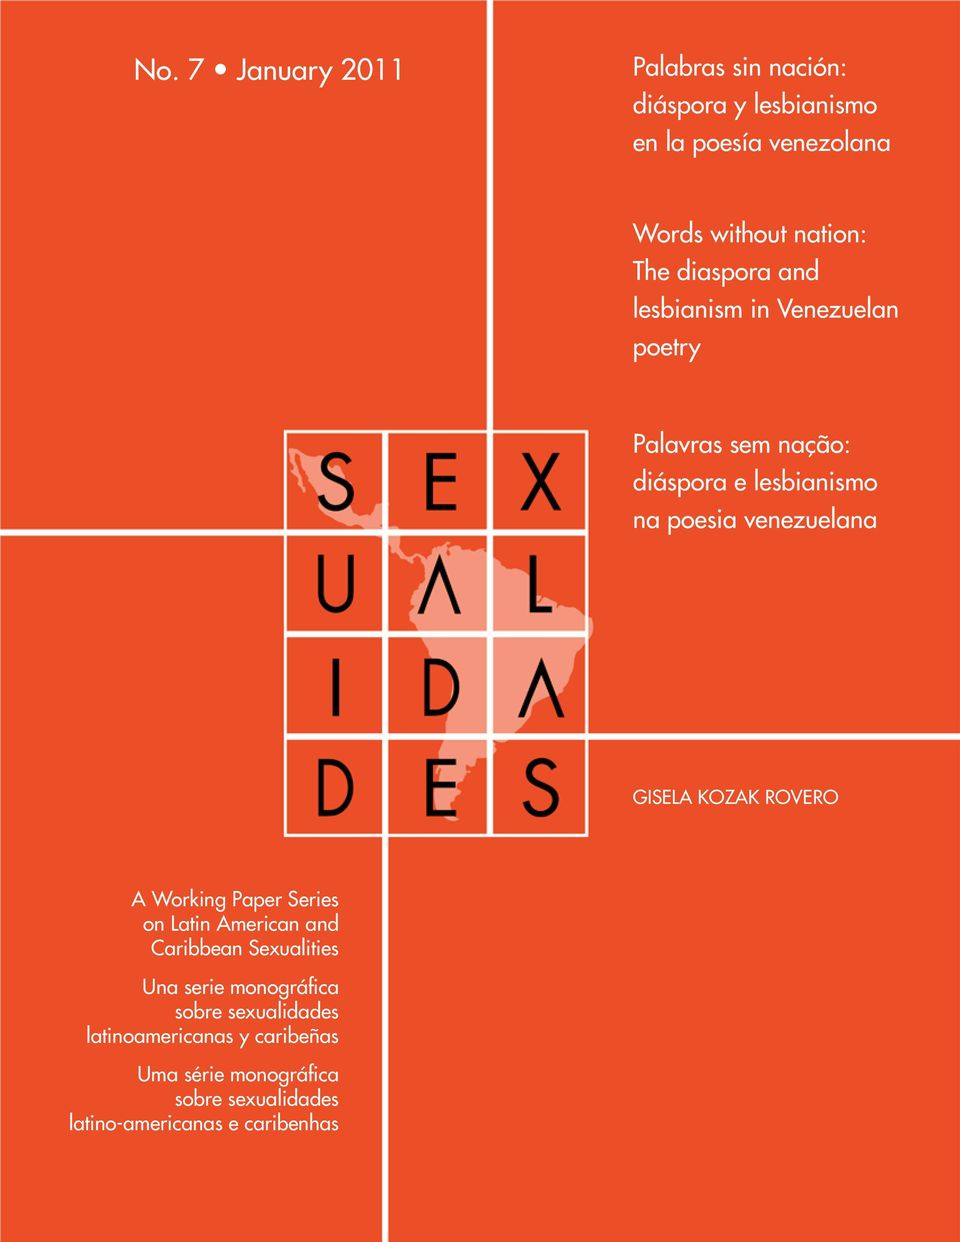 GISELA KOZAK ROVERO A Working Paper Series on Latin American and Caribbean Sexualities Una serie monográfica